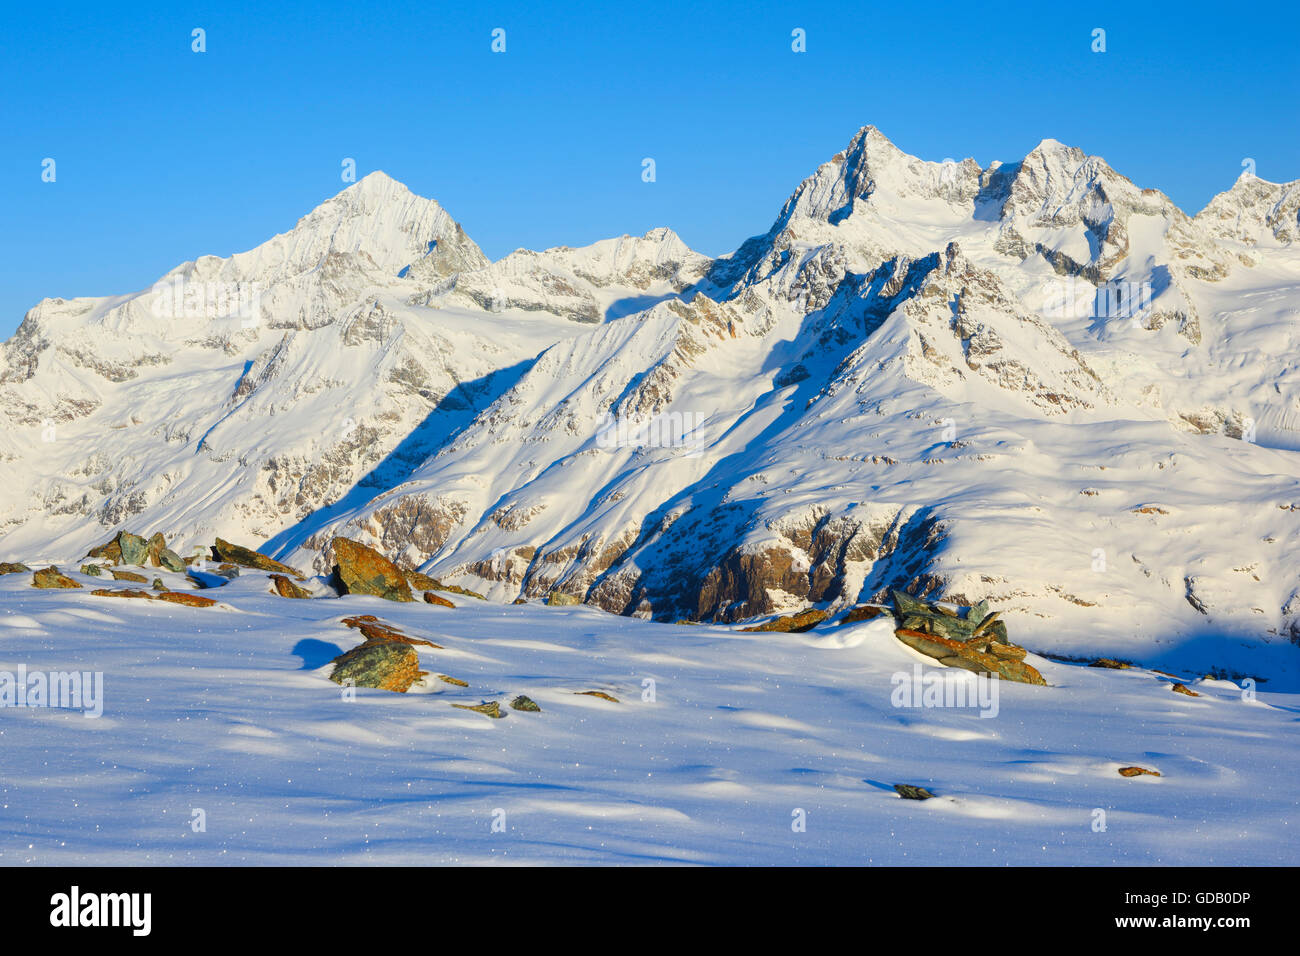 Dent Blanche - 4357 ms,Ober Gabelhorn - 4063 ms,Valais,Switzerland Stock Photo